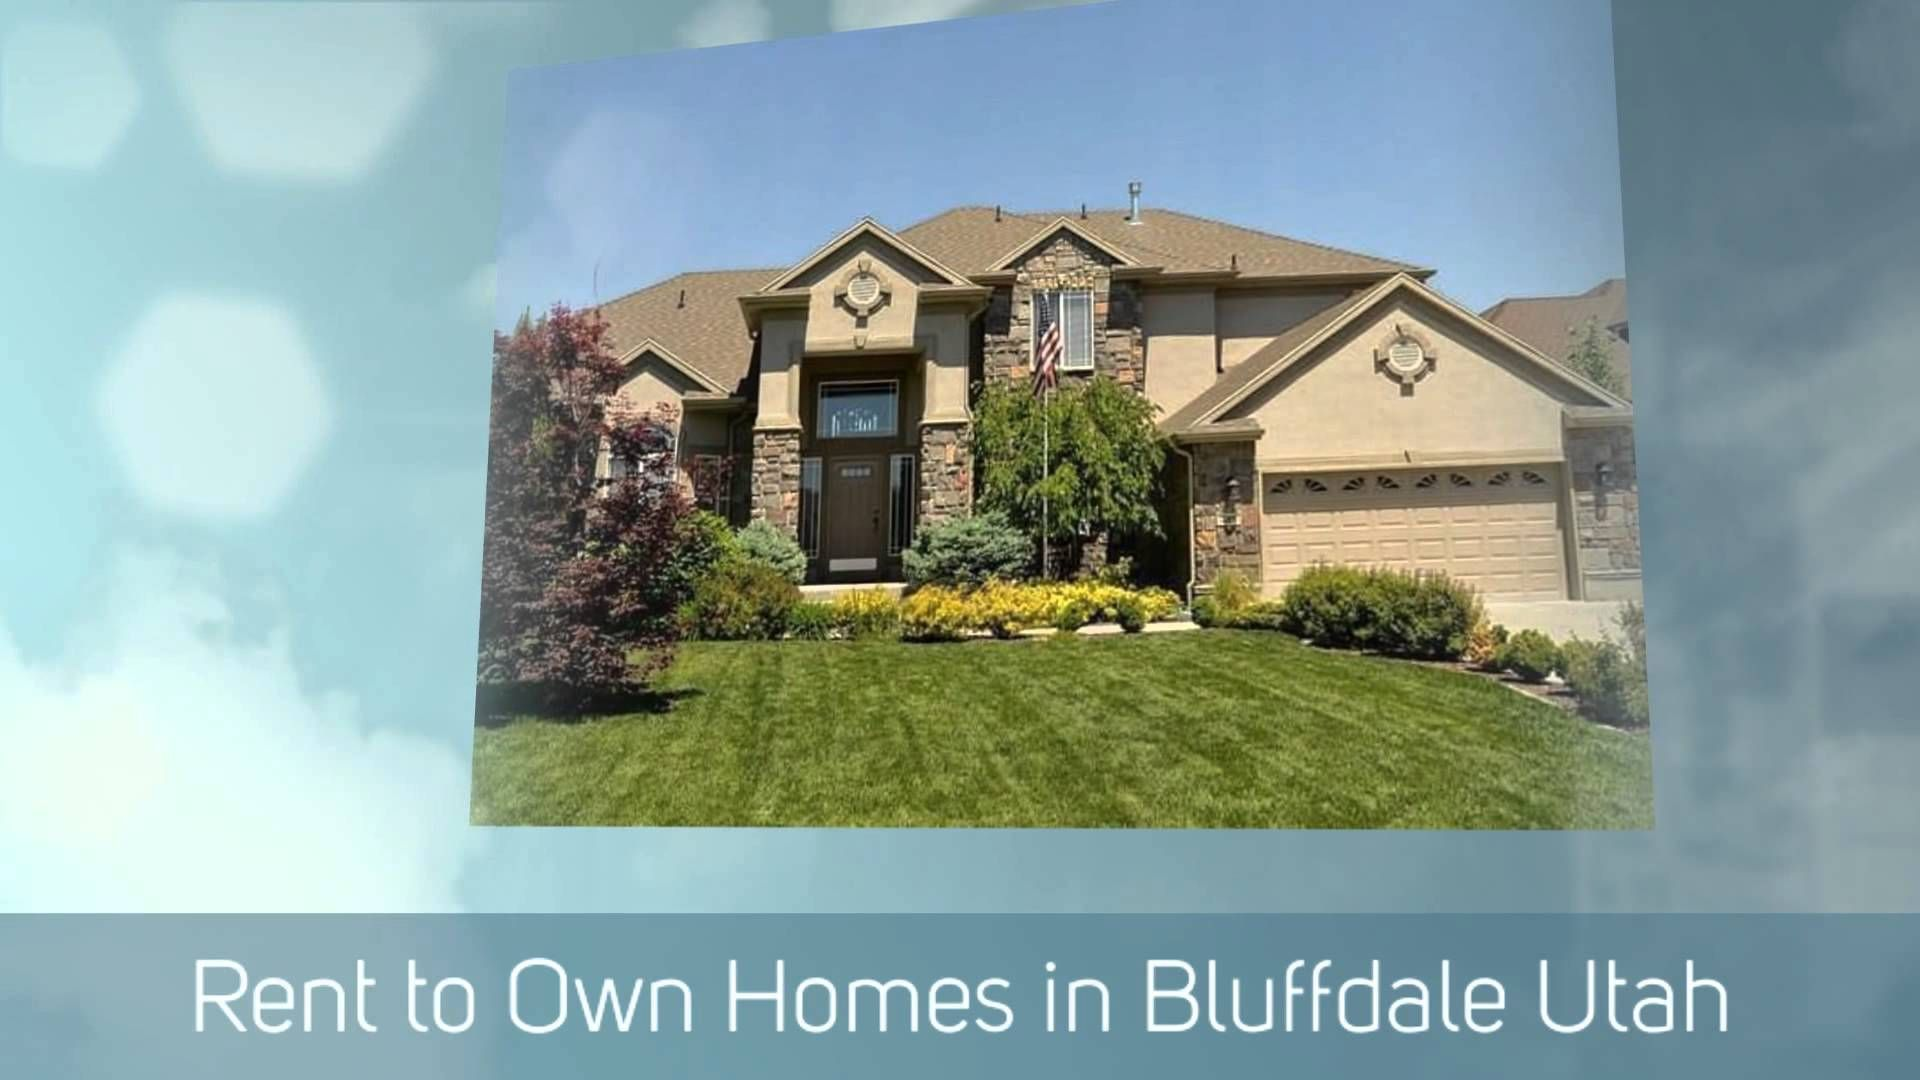 Rent to Own Homes in Bluffdale Utah | Owner Financed Houses